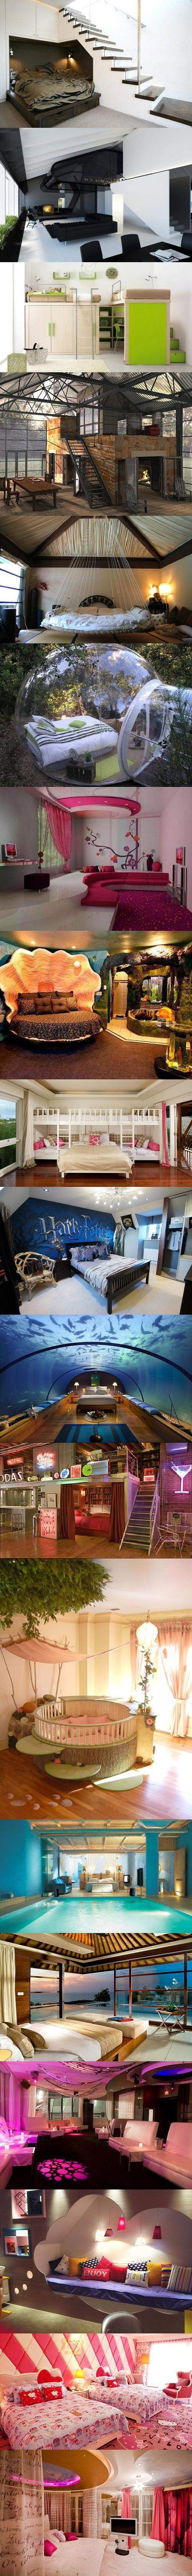 Dream Bedrooms.  Wonder what it would be like to have enough money to do these kind of things to my house??